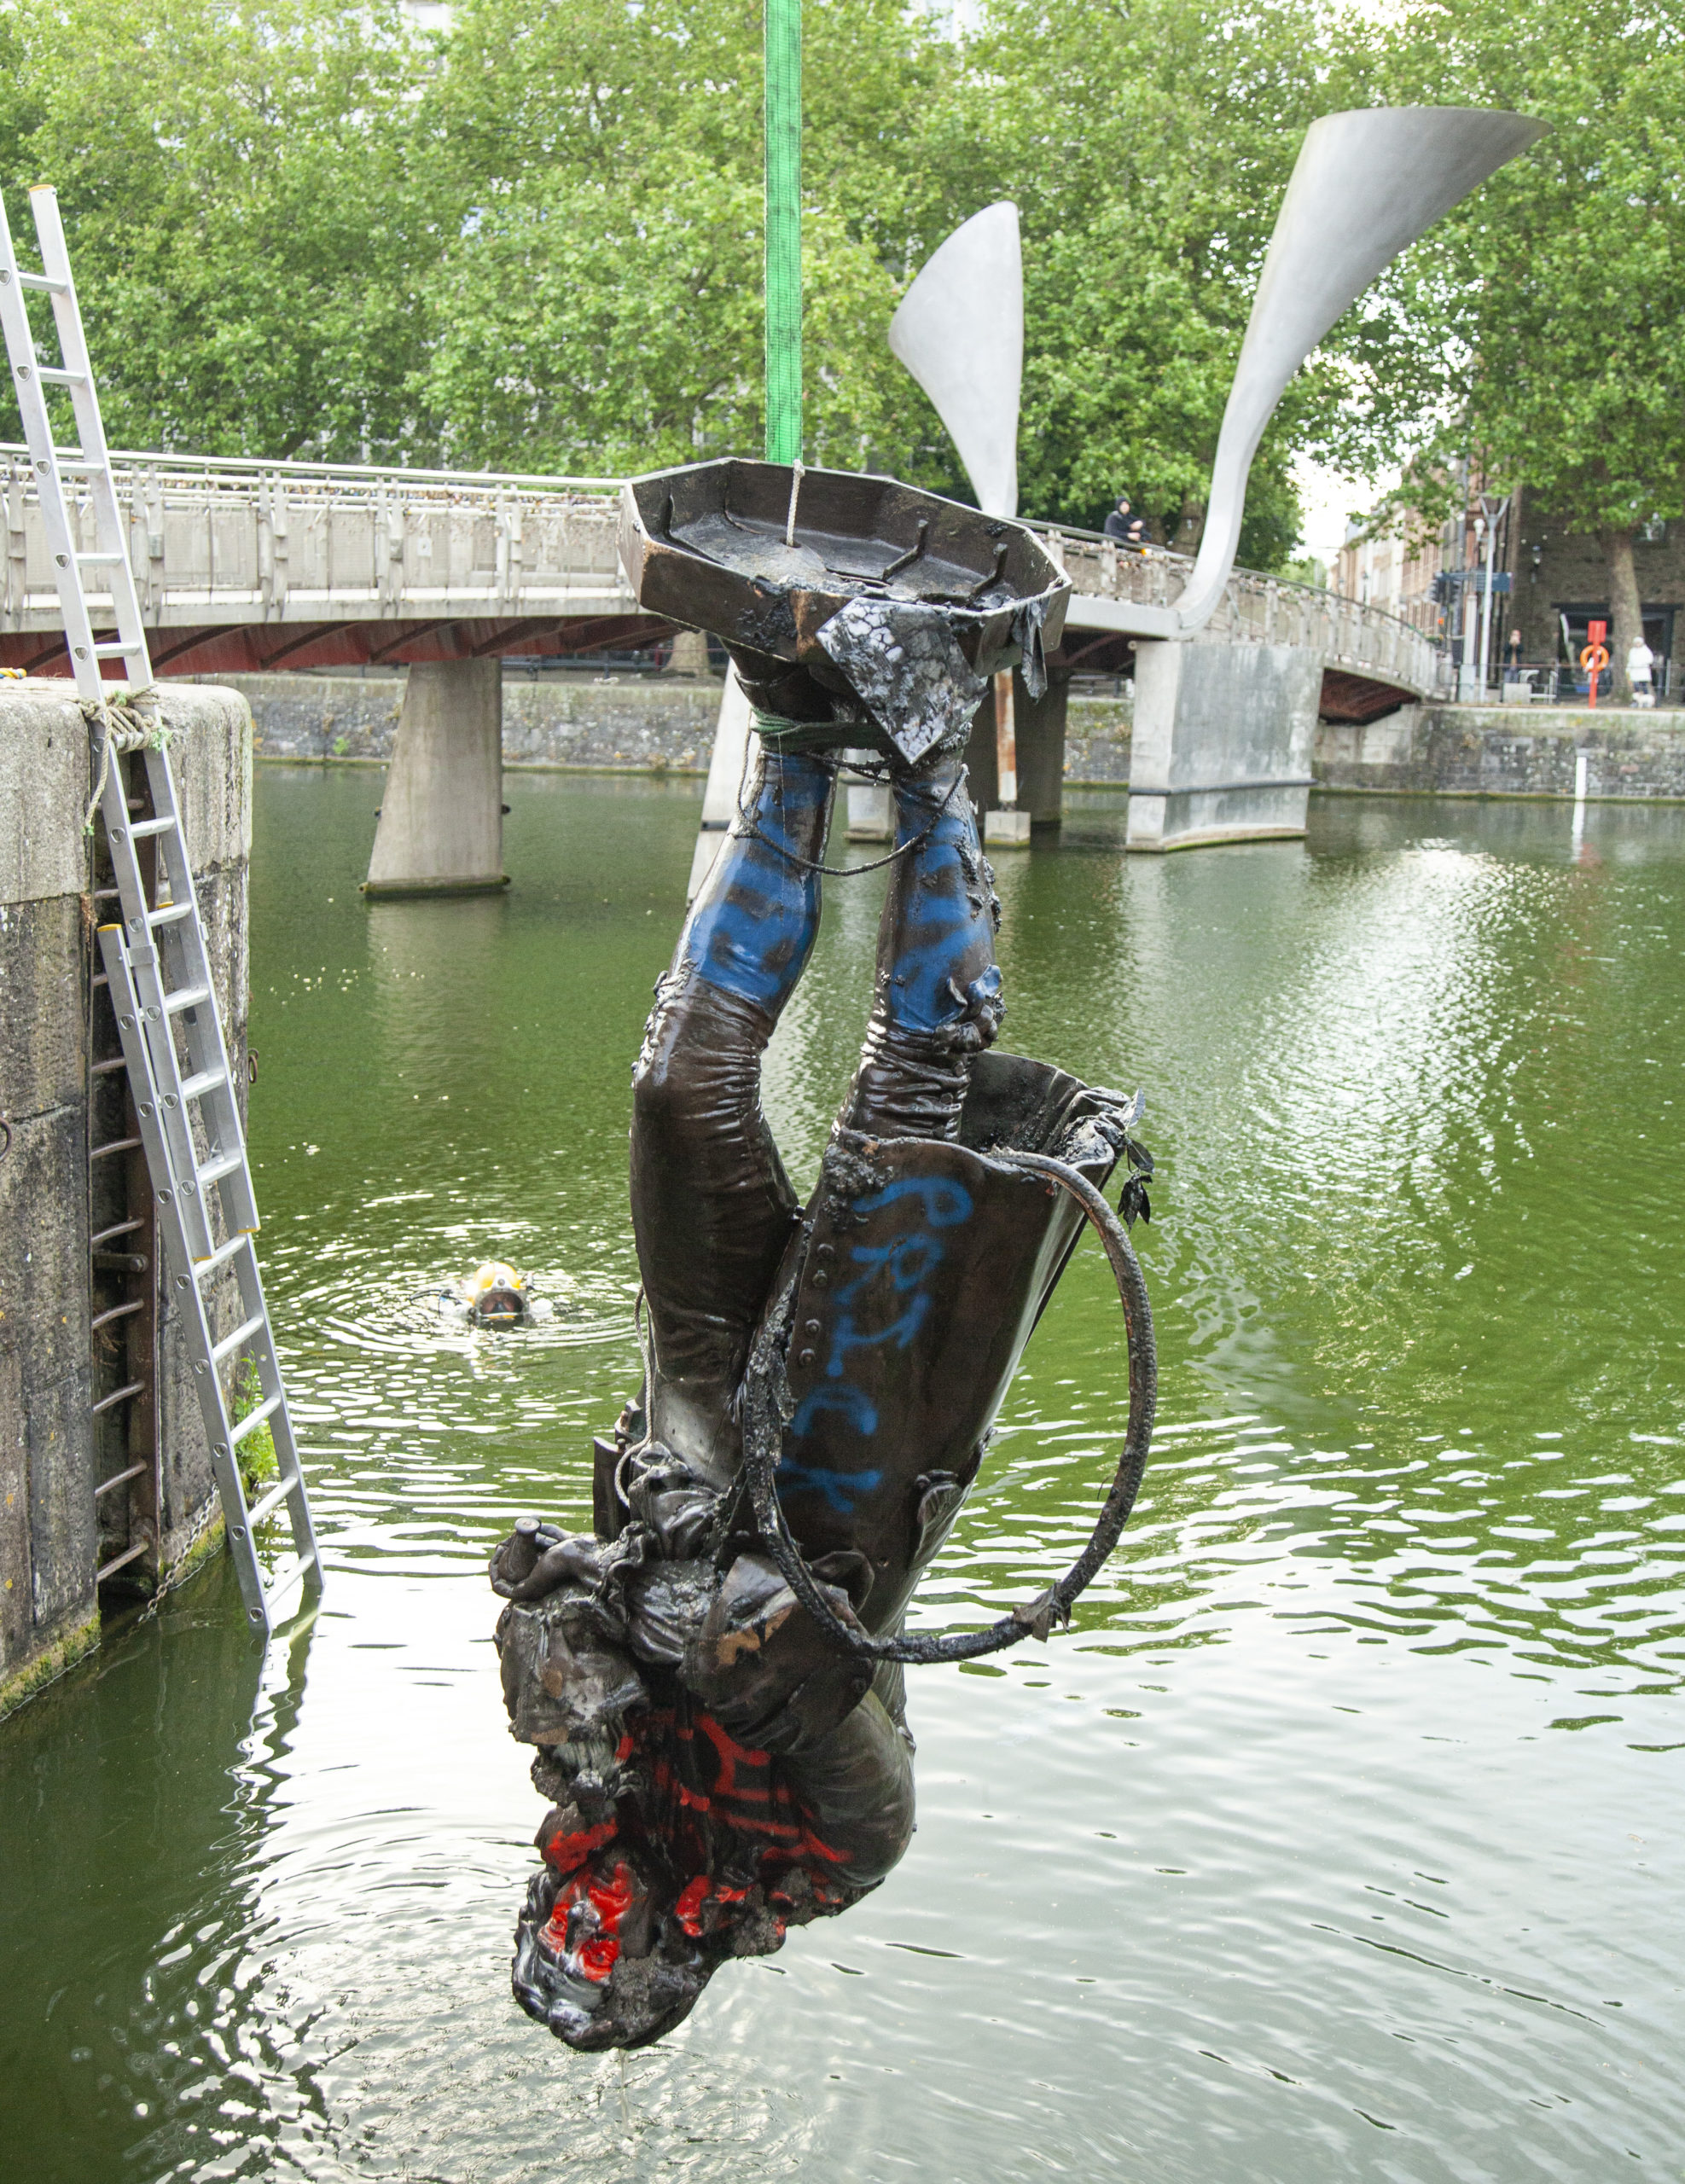 Colston statue hanging upside down, being brought up from Bristol harbour. It is painted in blue and red paint and has a tyre attached. Bridge in the background. Image Caption: Colston statue being brought up from Bristol harbour (© Bristol City Council)